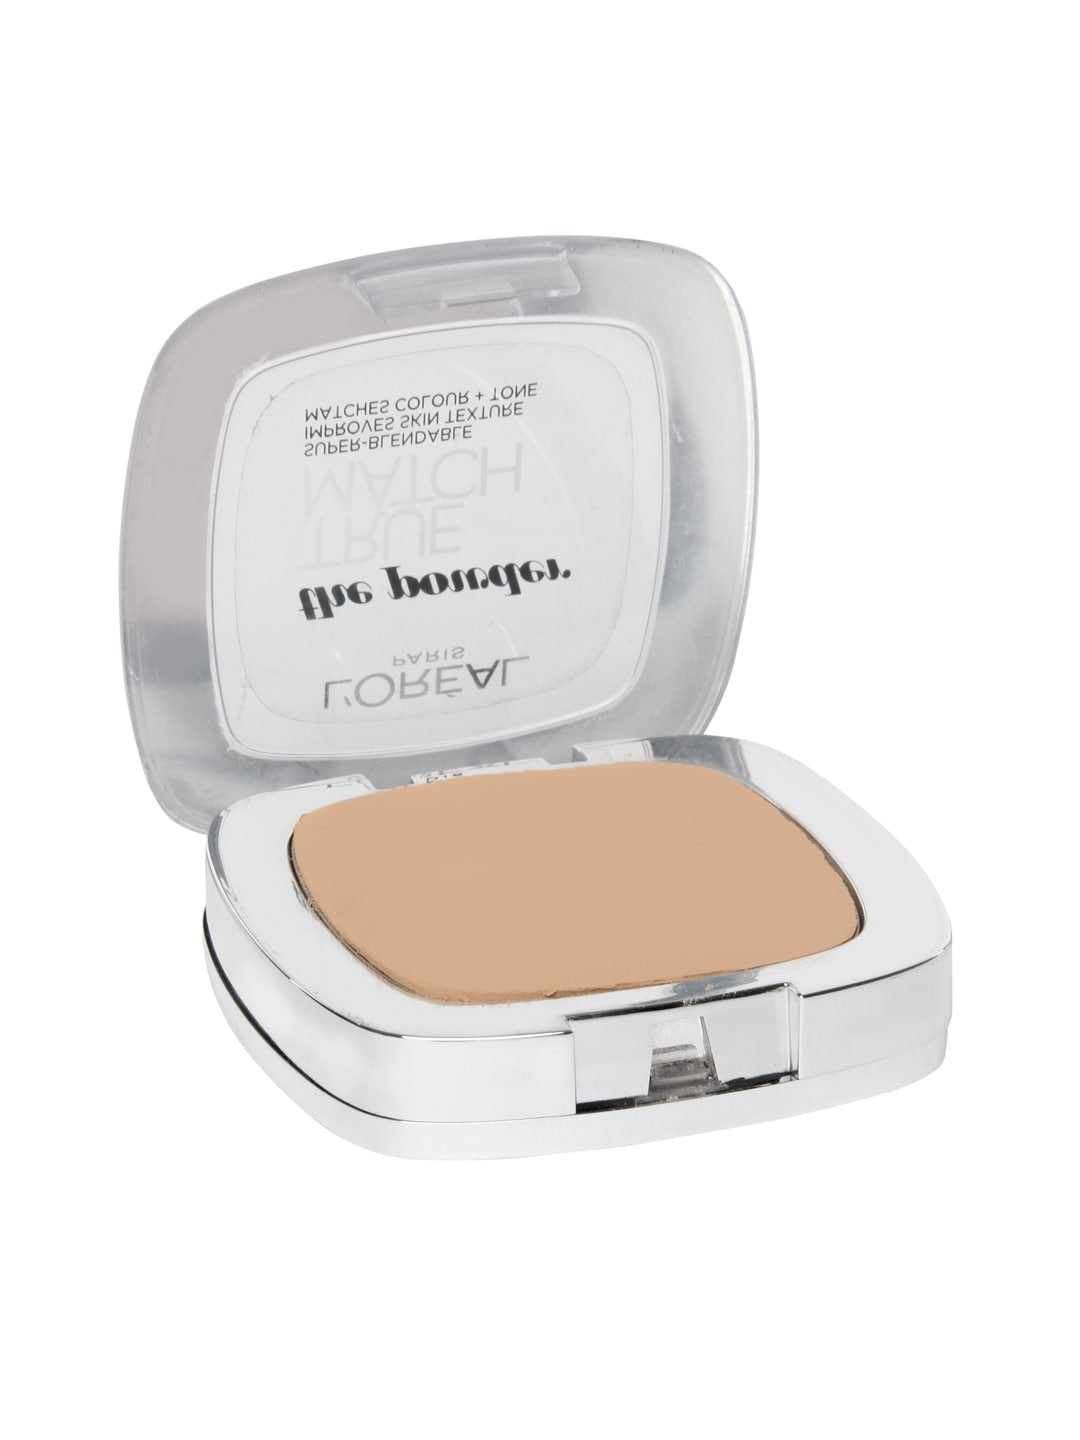 LOreal Paris The Powder True Match Rose Beige Compact C3